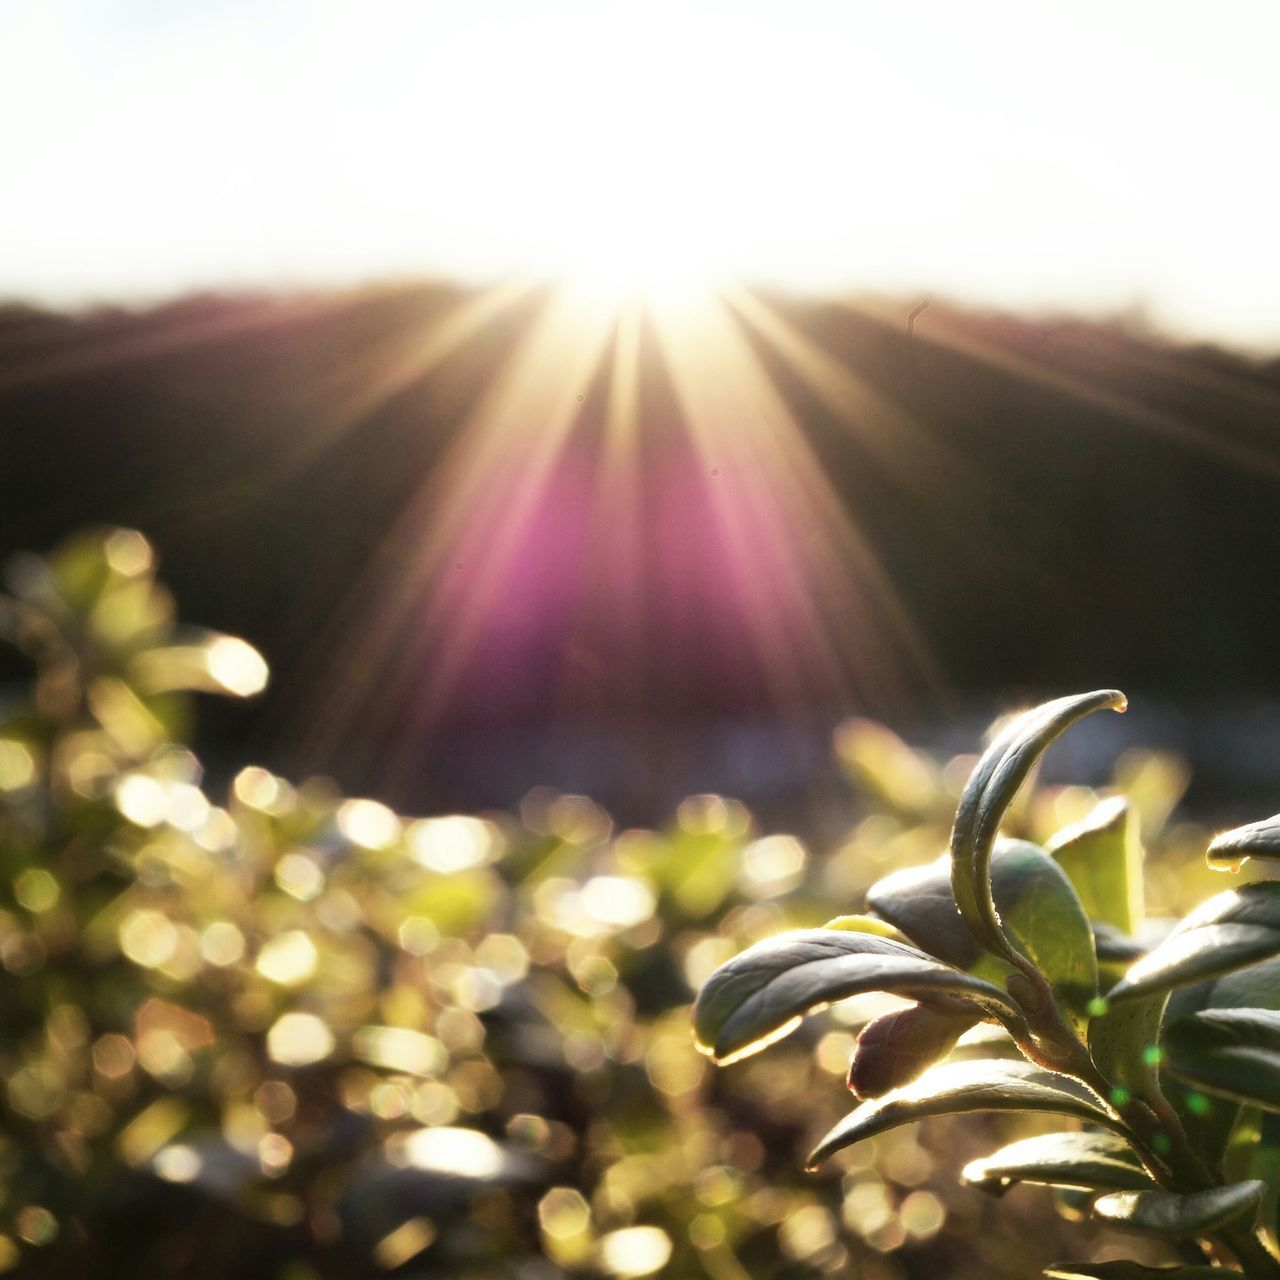 bright, lens flare, growth, sunlight, nature, sun, no people, plant, outdoors, beauty in nature, close-up, day